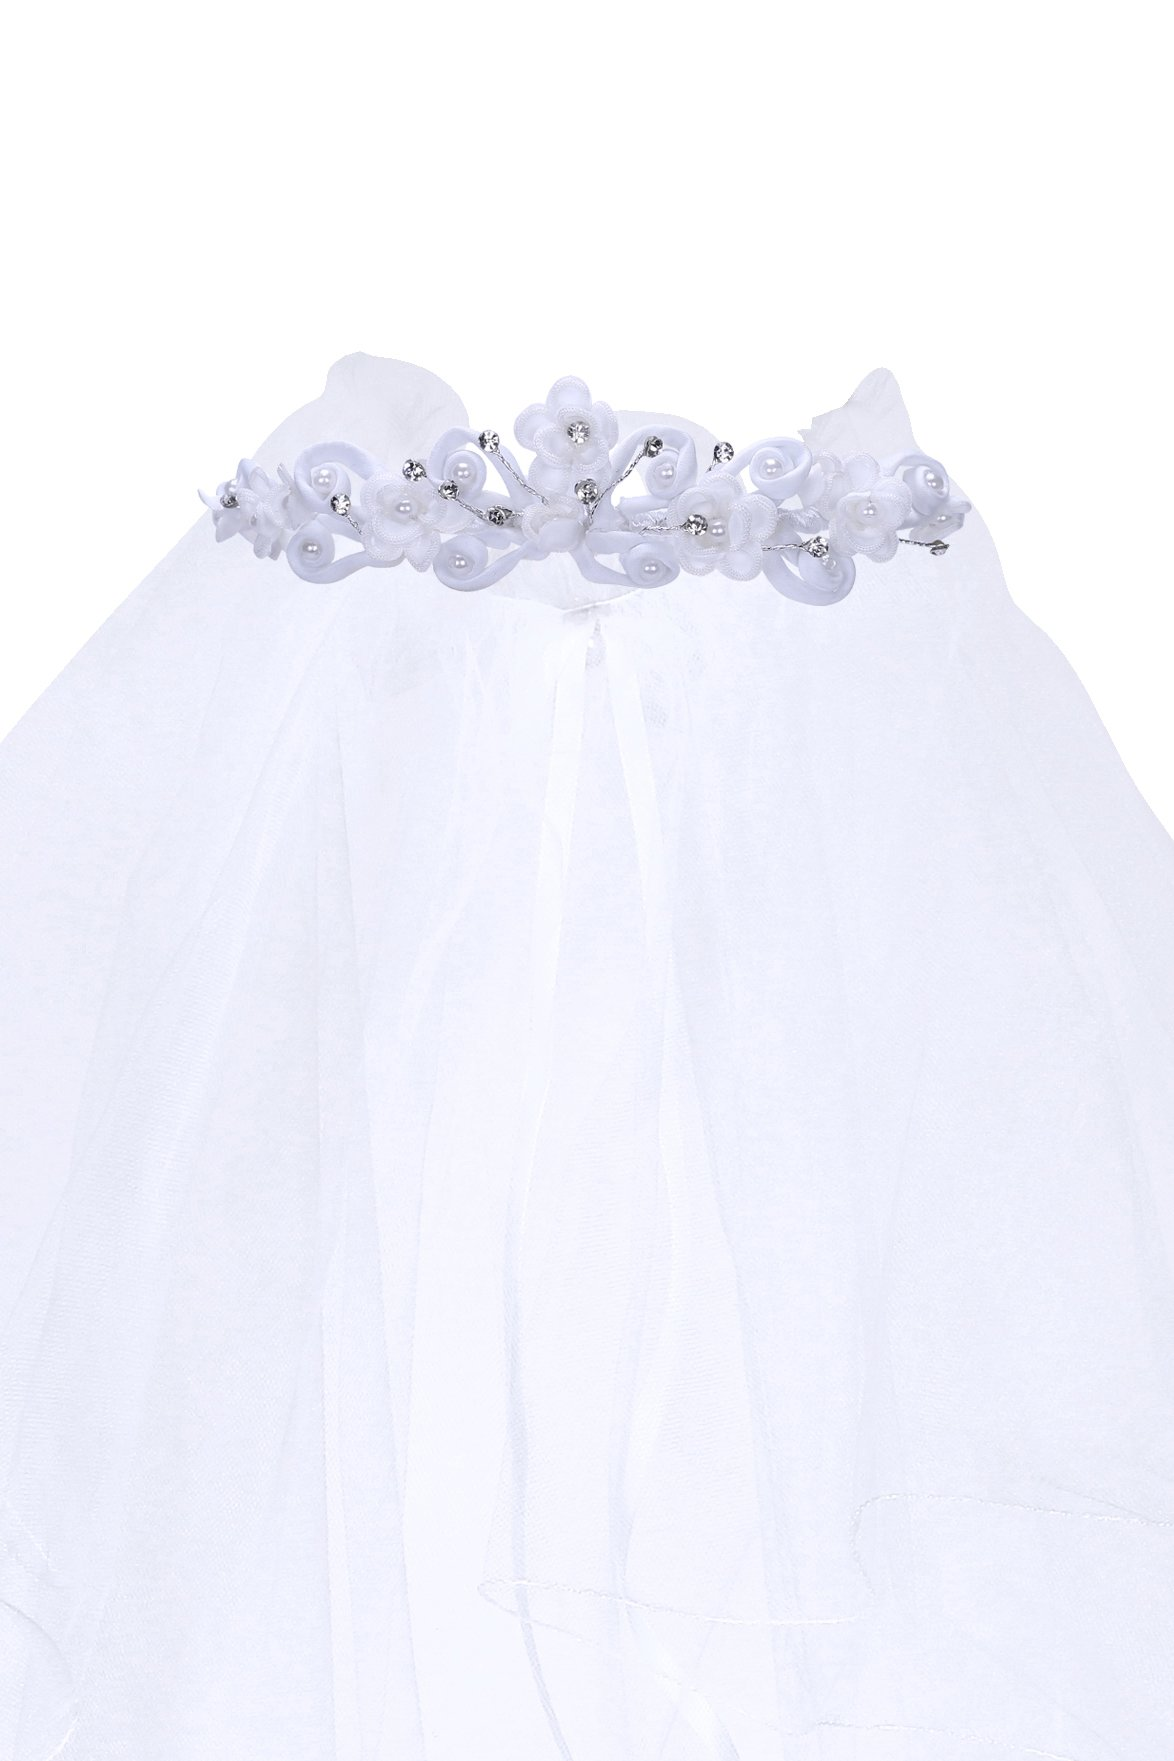 Kids Dream Precious First Communion Flower Girl Veil w/Elegant Satin Crown for Girls by Kid's Dream (Image #1)